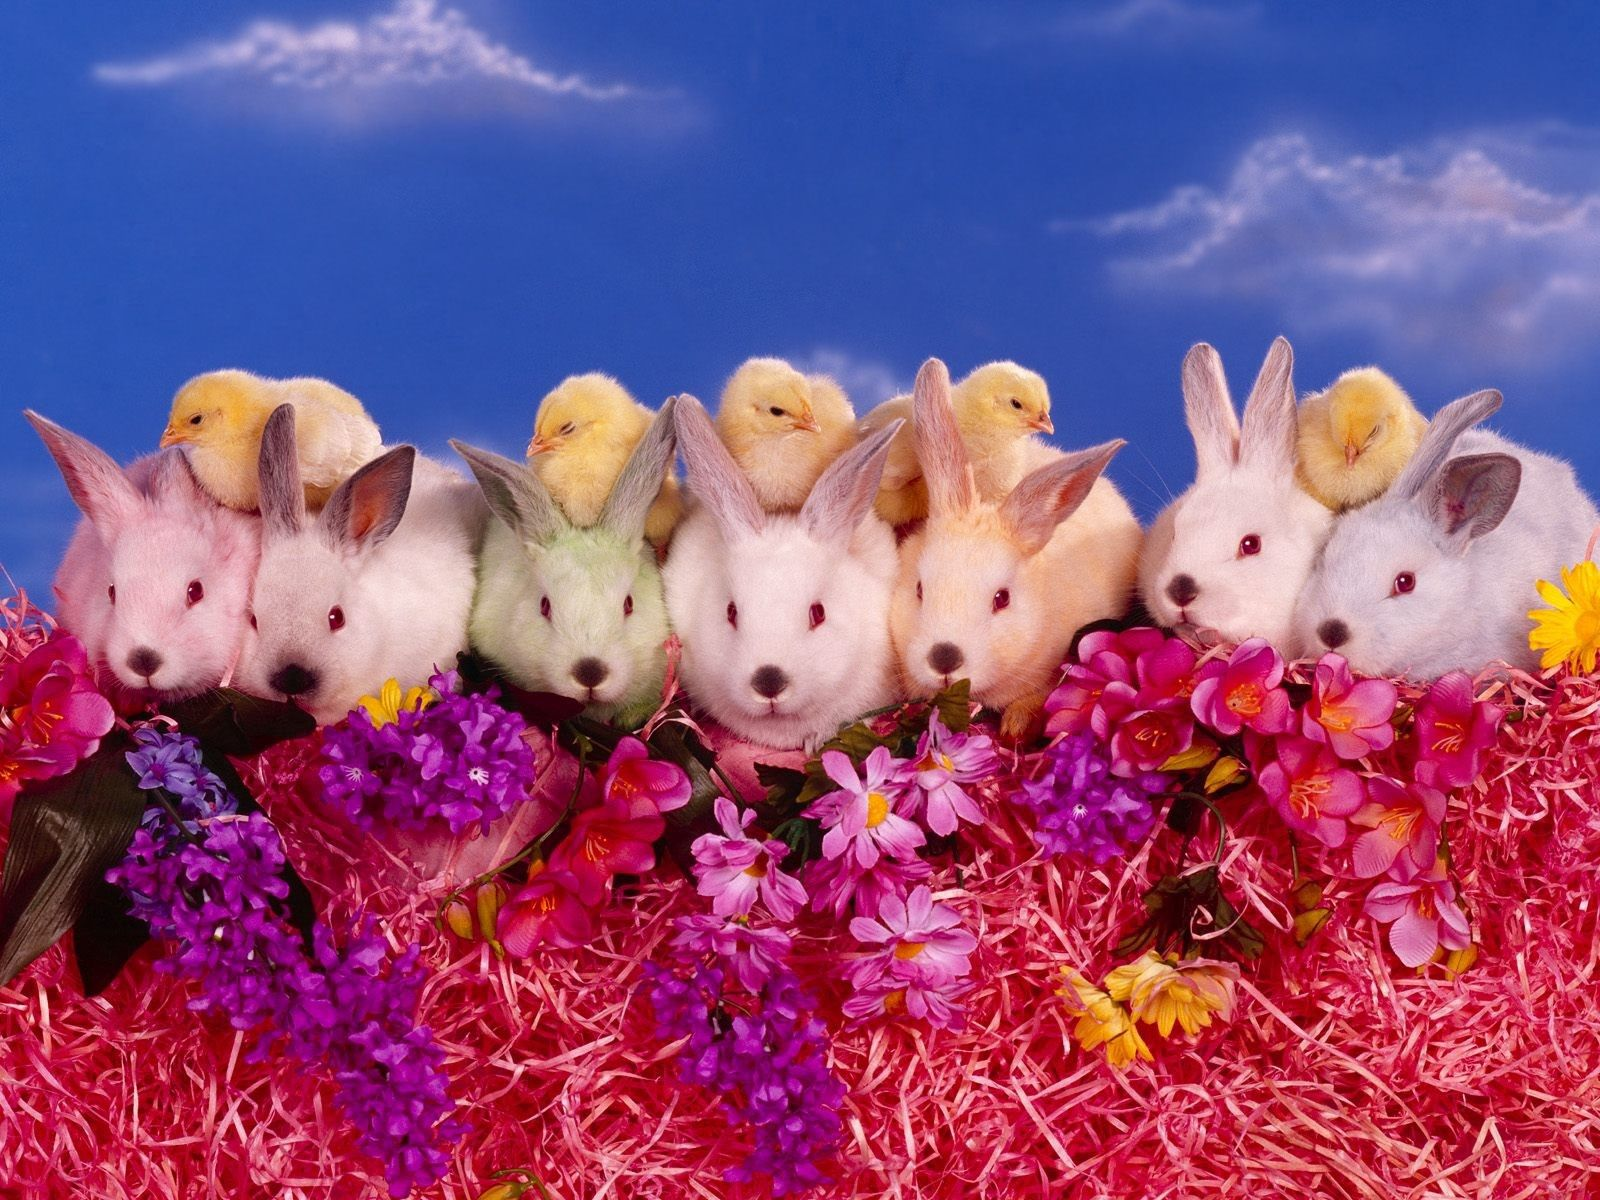 74894 download wallpaper Animals, Flowers, Rabbits, Chicks, Lots Of, Multitude screensavers and pictures for free